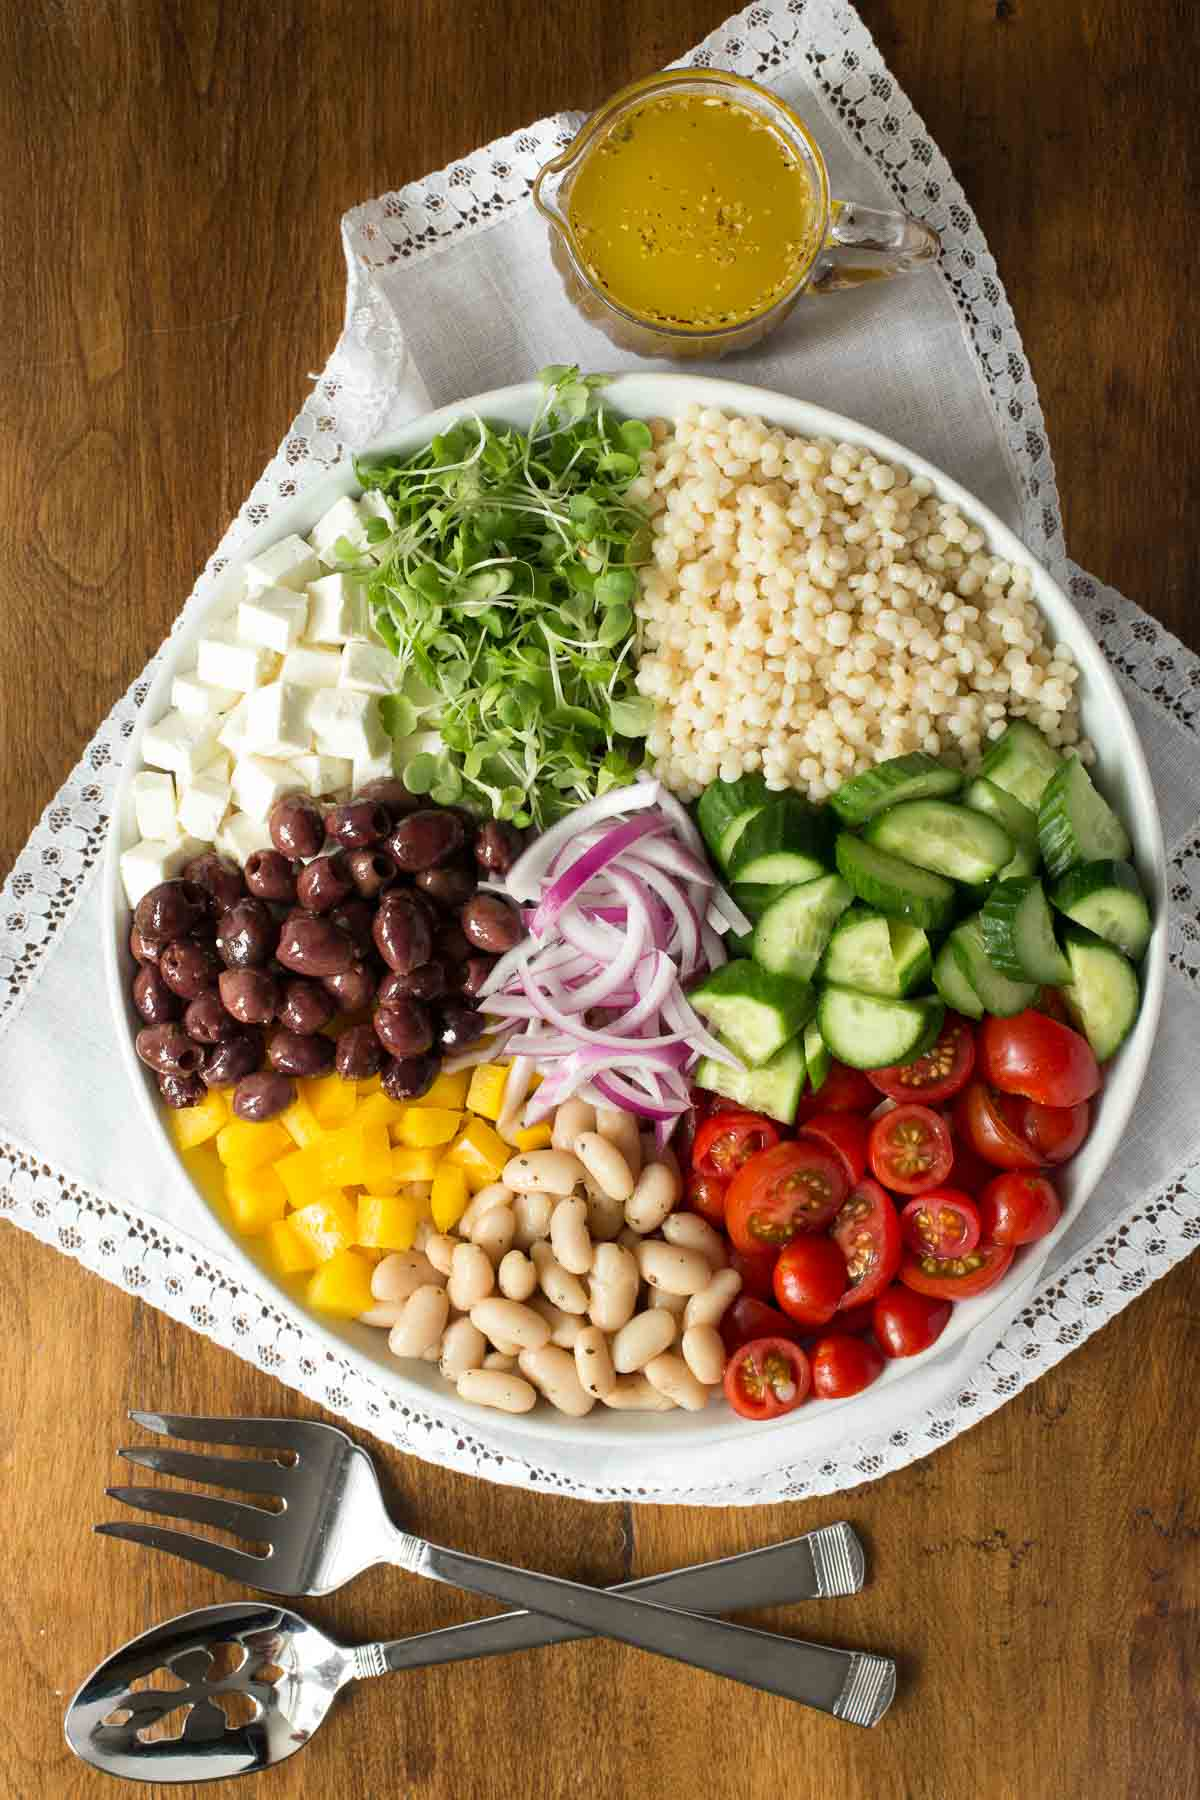 Overhead photo of a plate filled with Best Ever Greek Salad components on a white lace cloth.